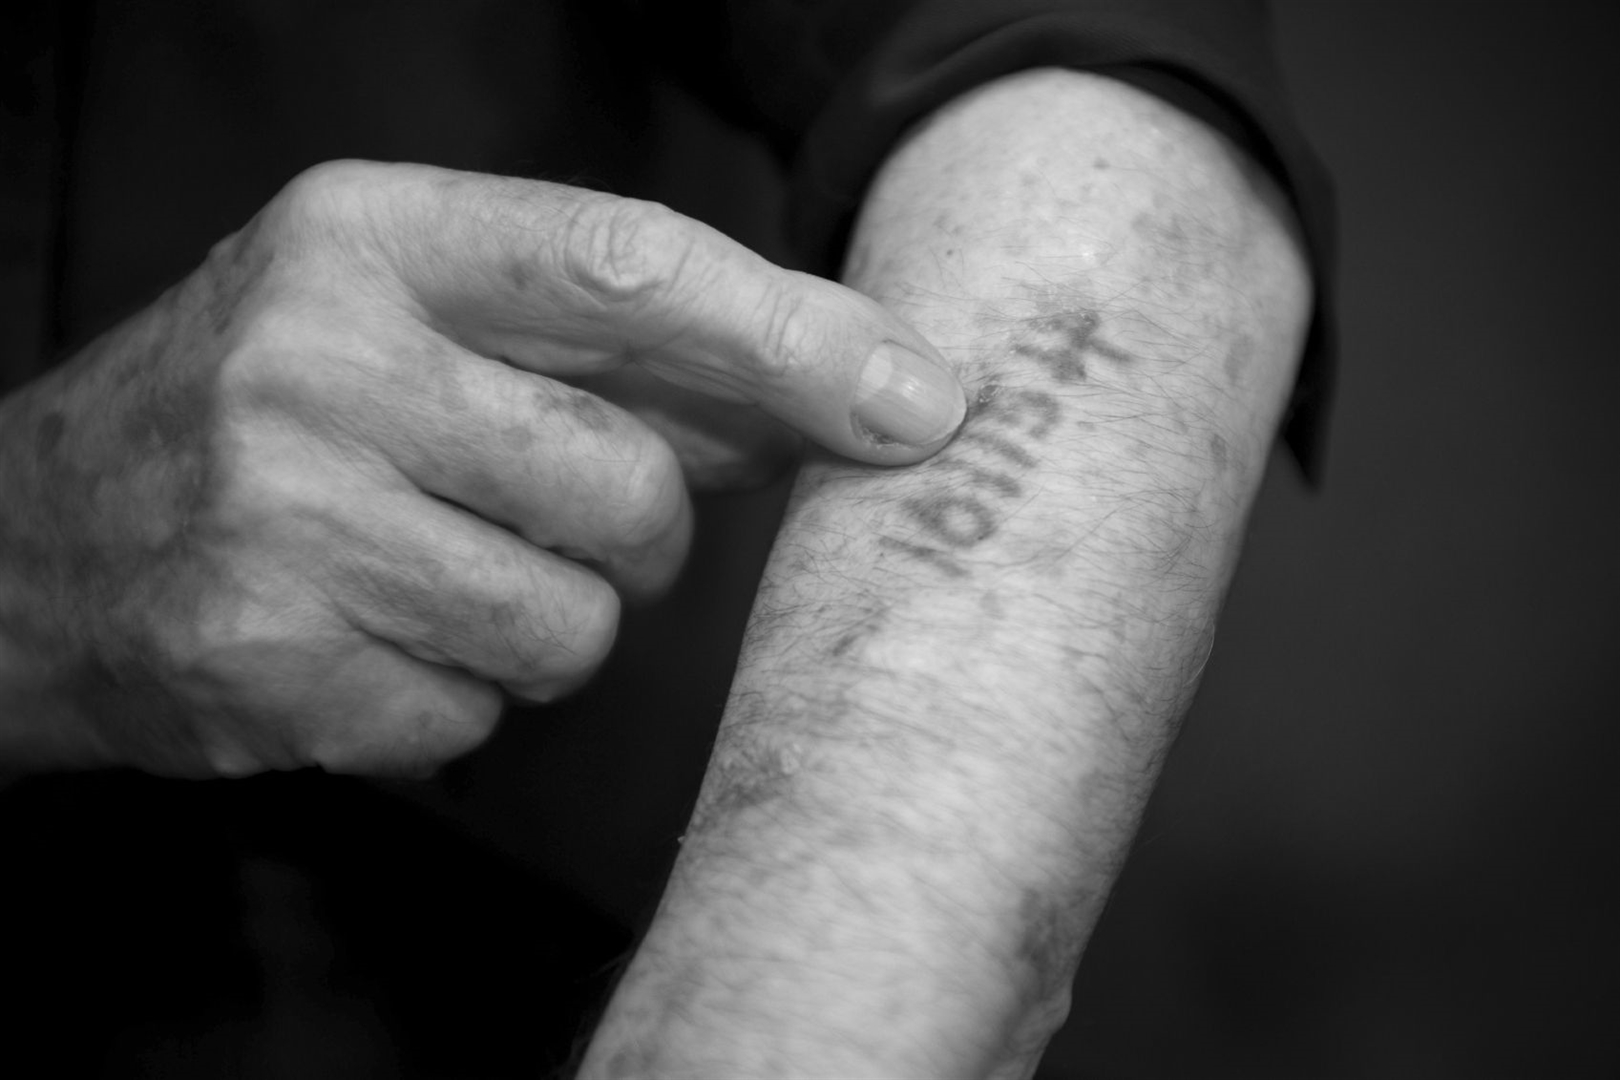 An 80-year-old Holocaust survivor living in Tiberias, Israel, shows the tattoo the Nazis marked him with in a concentration camp during the Holocaust.